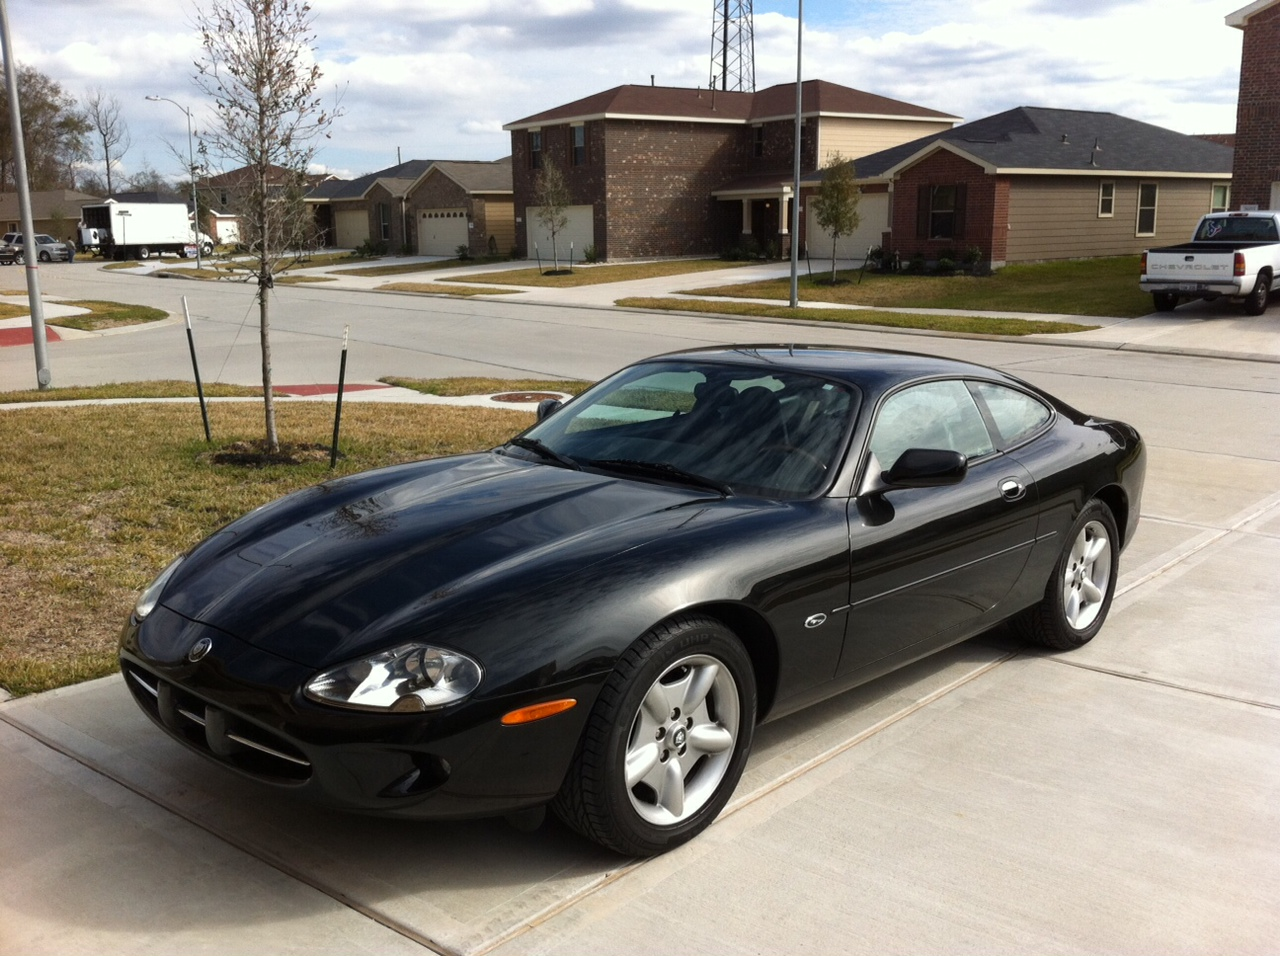 1997 Jaguar XK8 Photos, Informations, Articles - BestCarMag com